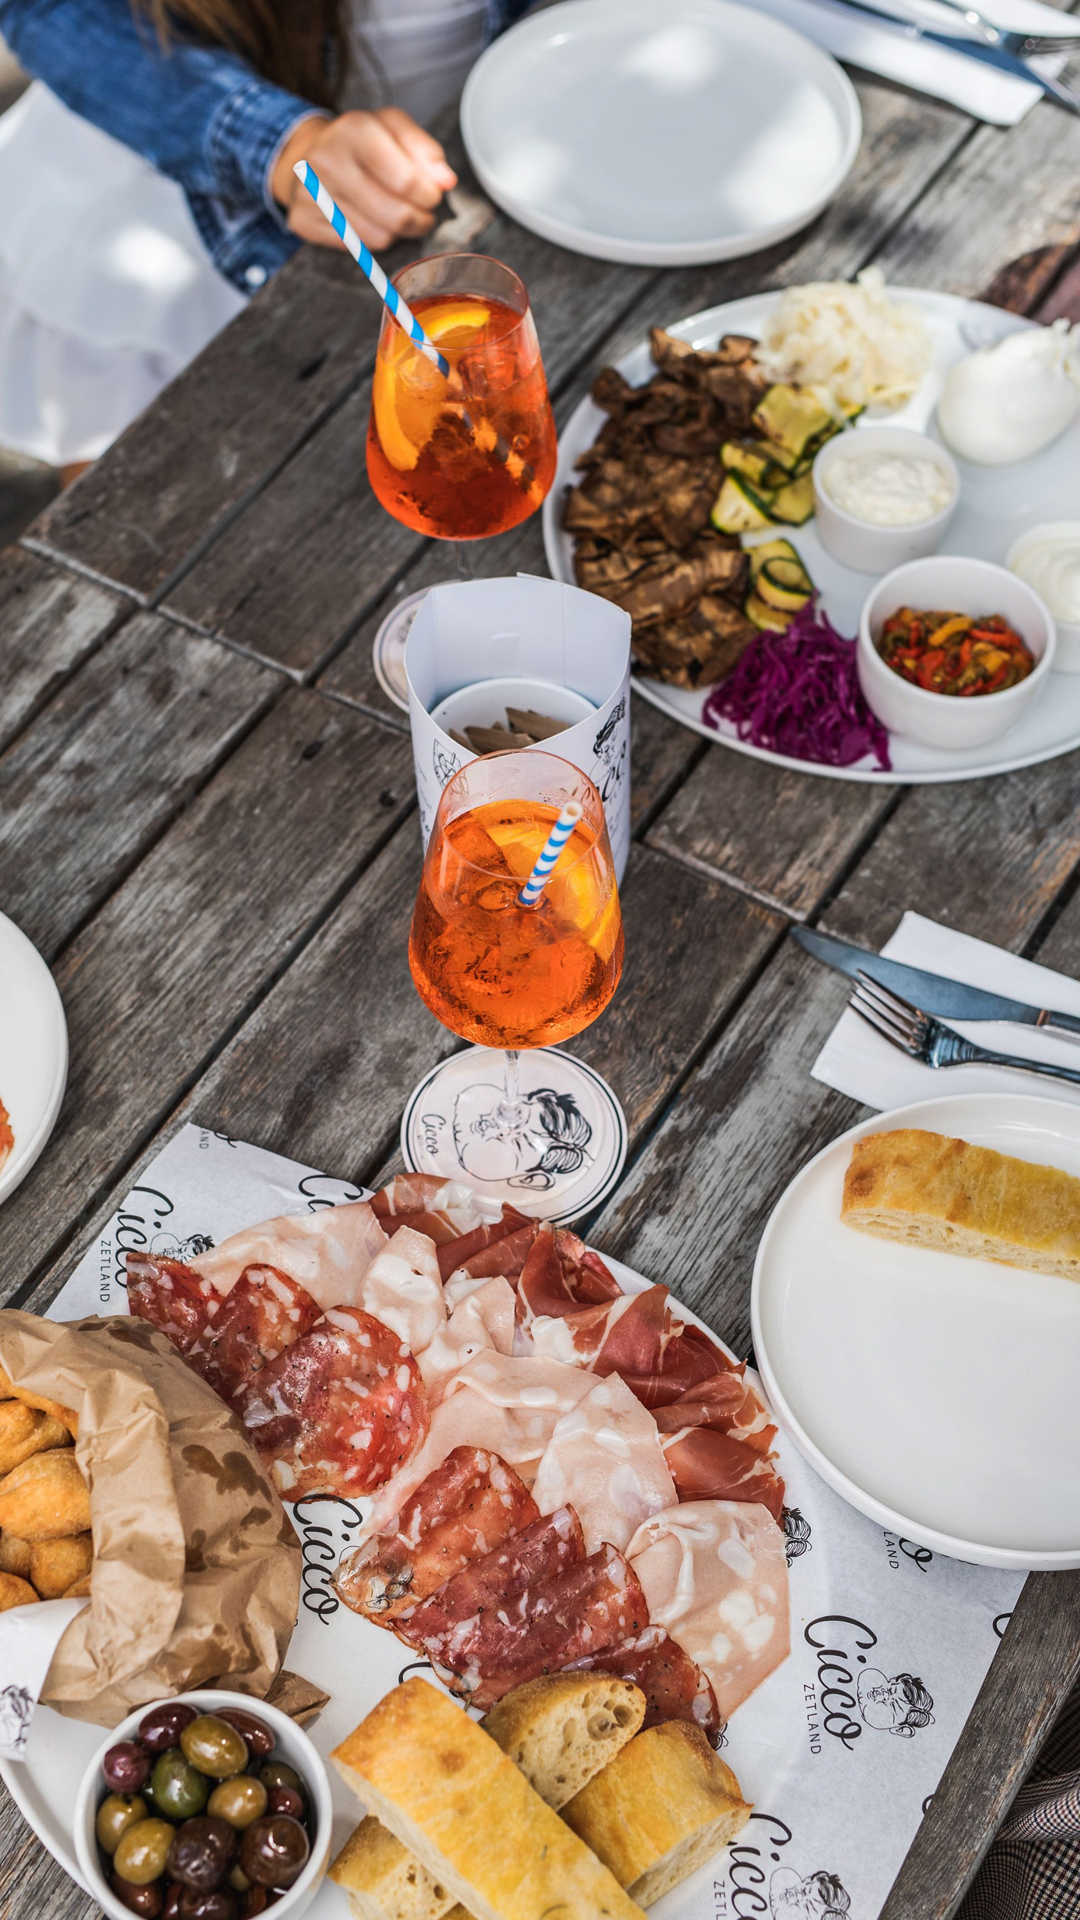 hands reaching out over wooden table loaded with various antipasti boards and spritz